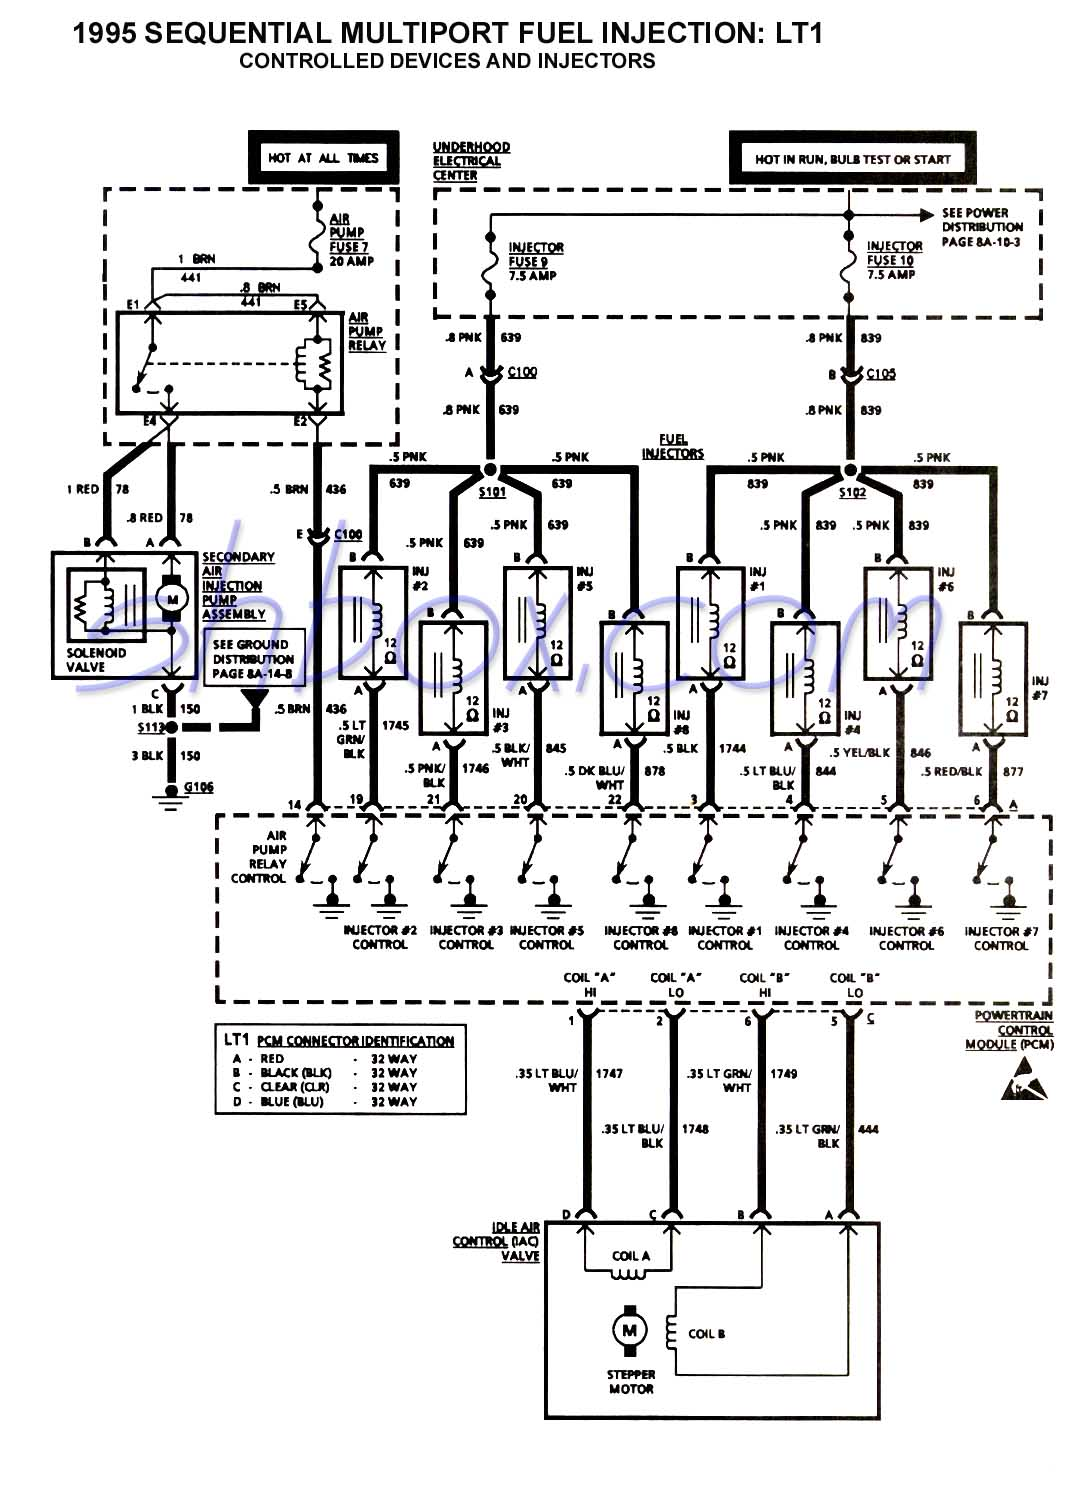 smfi_devices_injectors 94 chevy astro wiring harness free download \u2022 oasis dl co